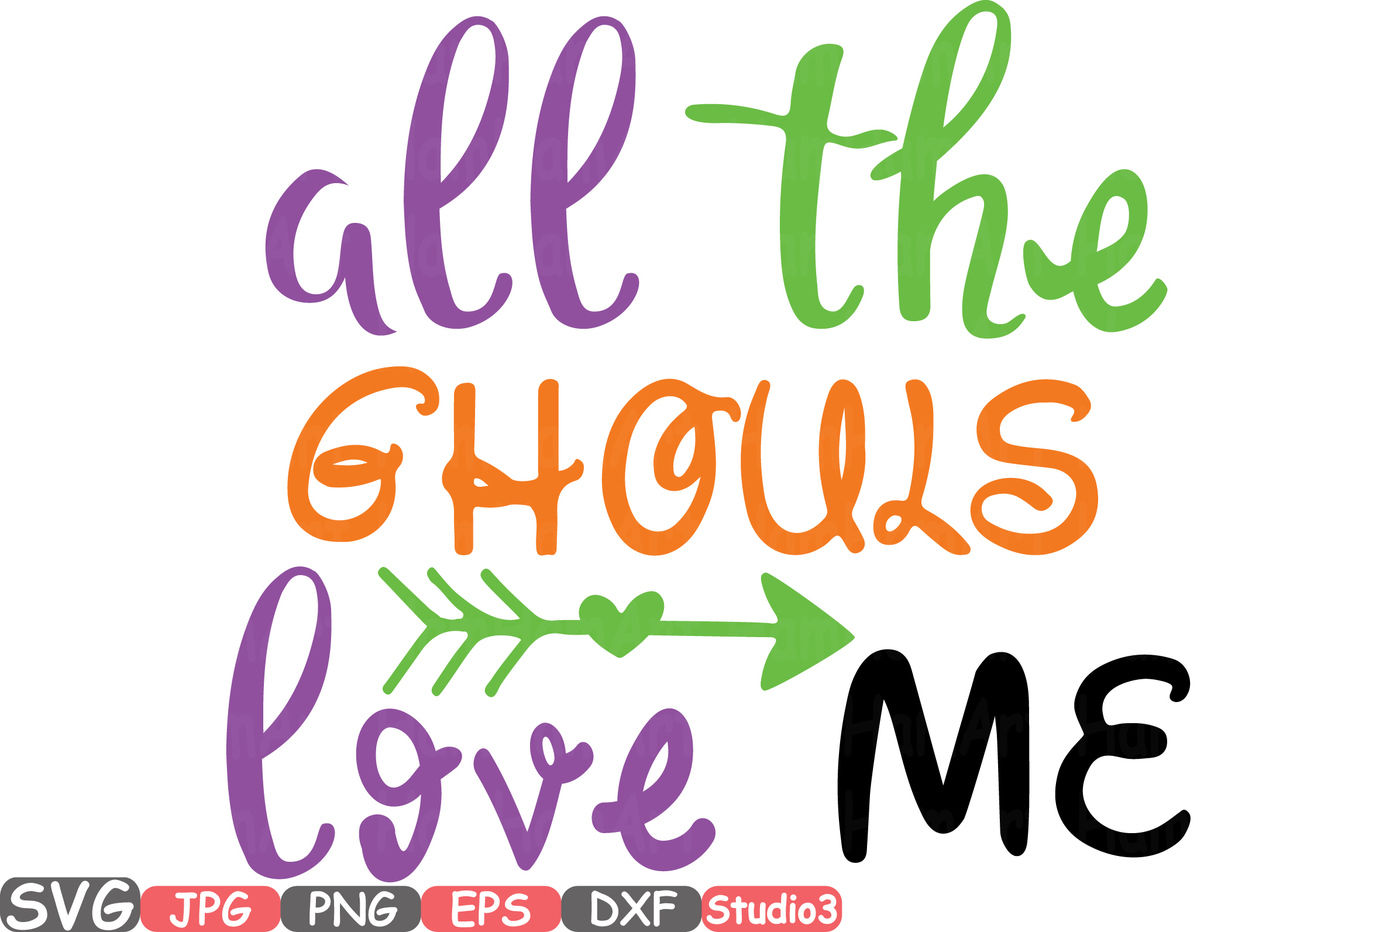 All The Ghouls Love Me Silhouette Svg Cutting Files Digital Clip Art Graphic Studio3 Cricut Cuttable Die Cut Machines Ghost 49sv By Hamhamart Thehungryjpeg Com